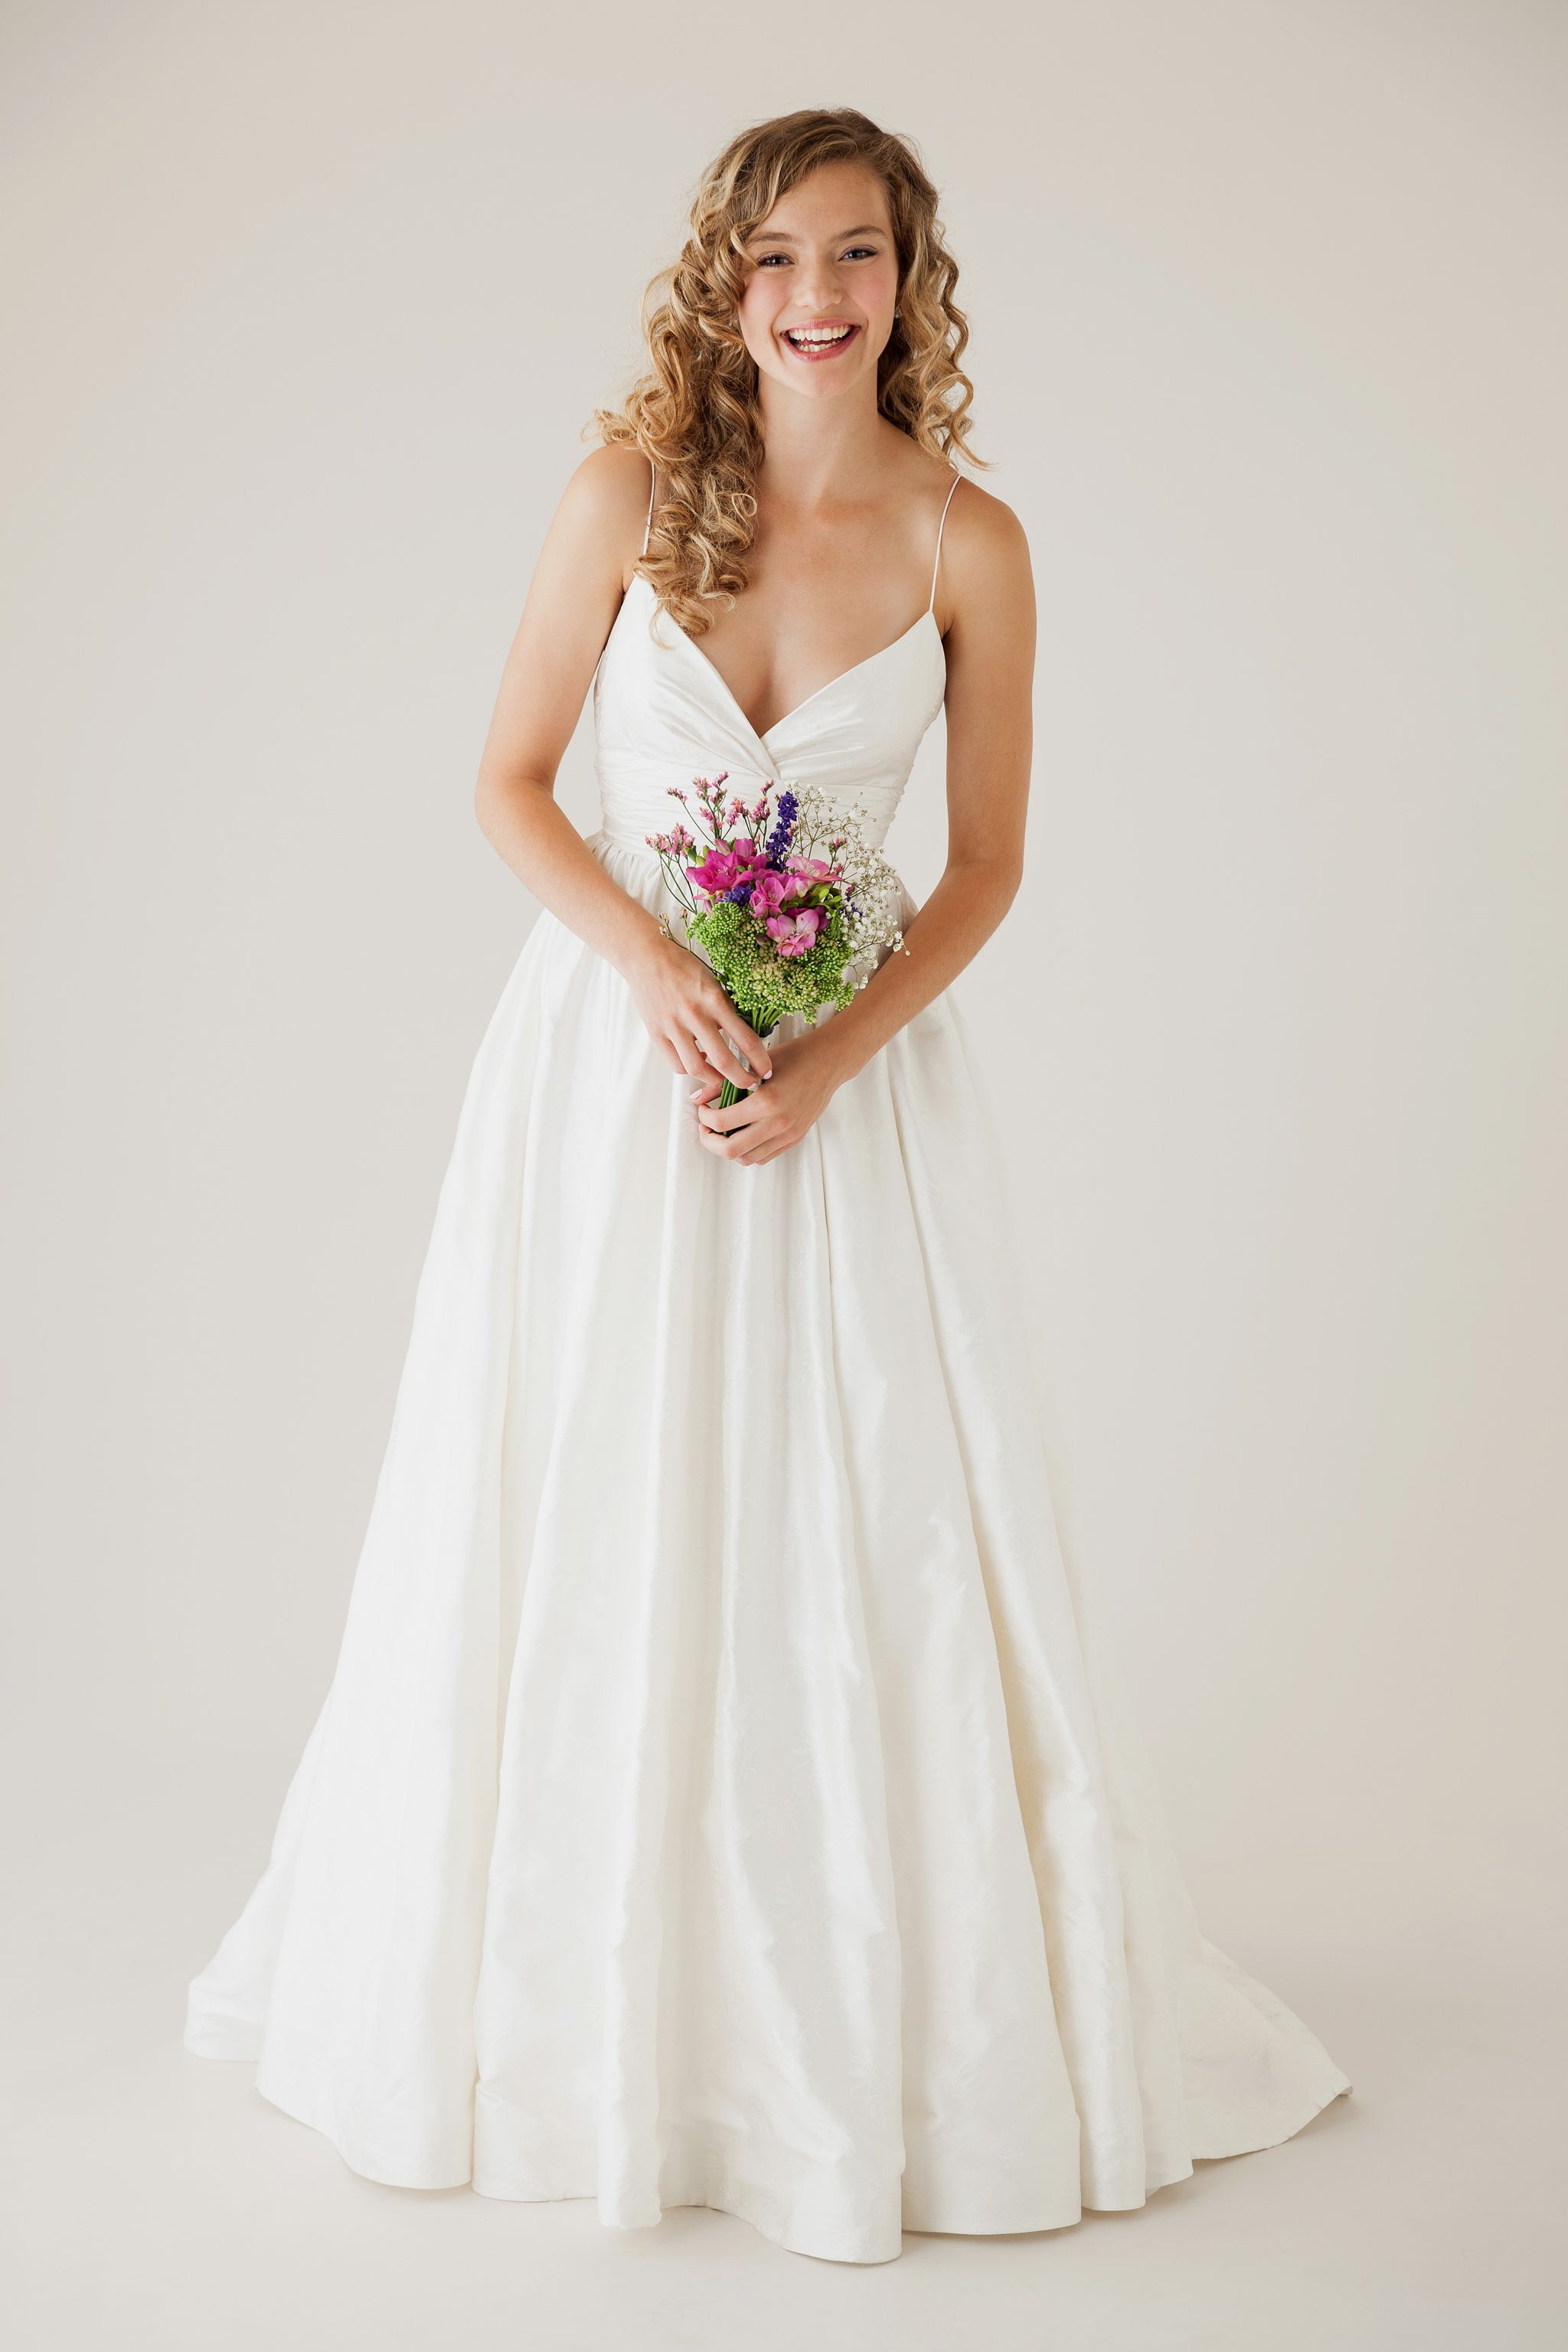 The Utterly Romantic Charming Dress By Astridmerced